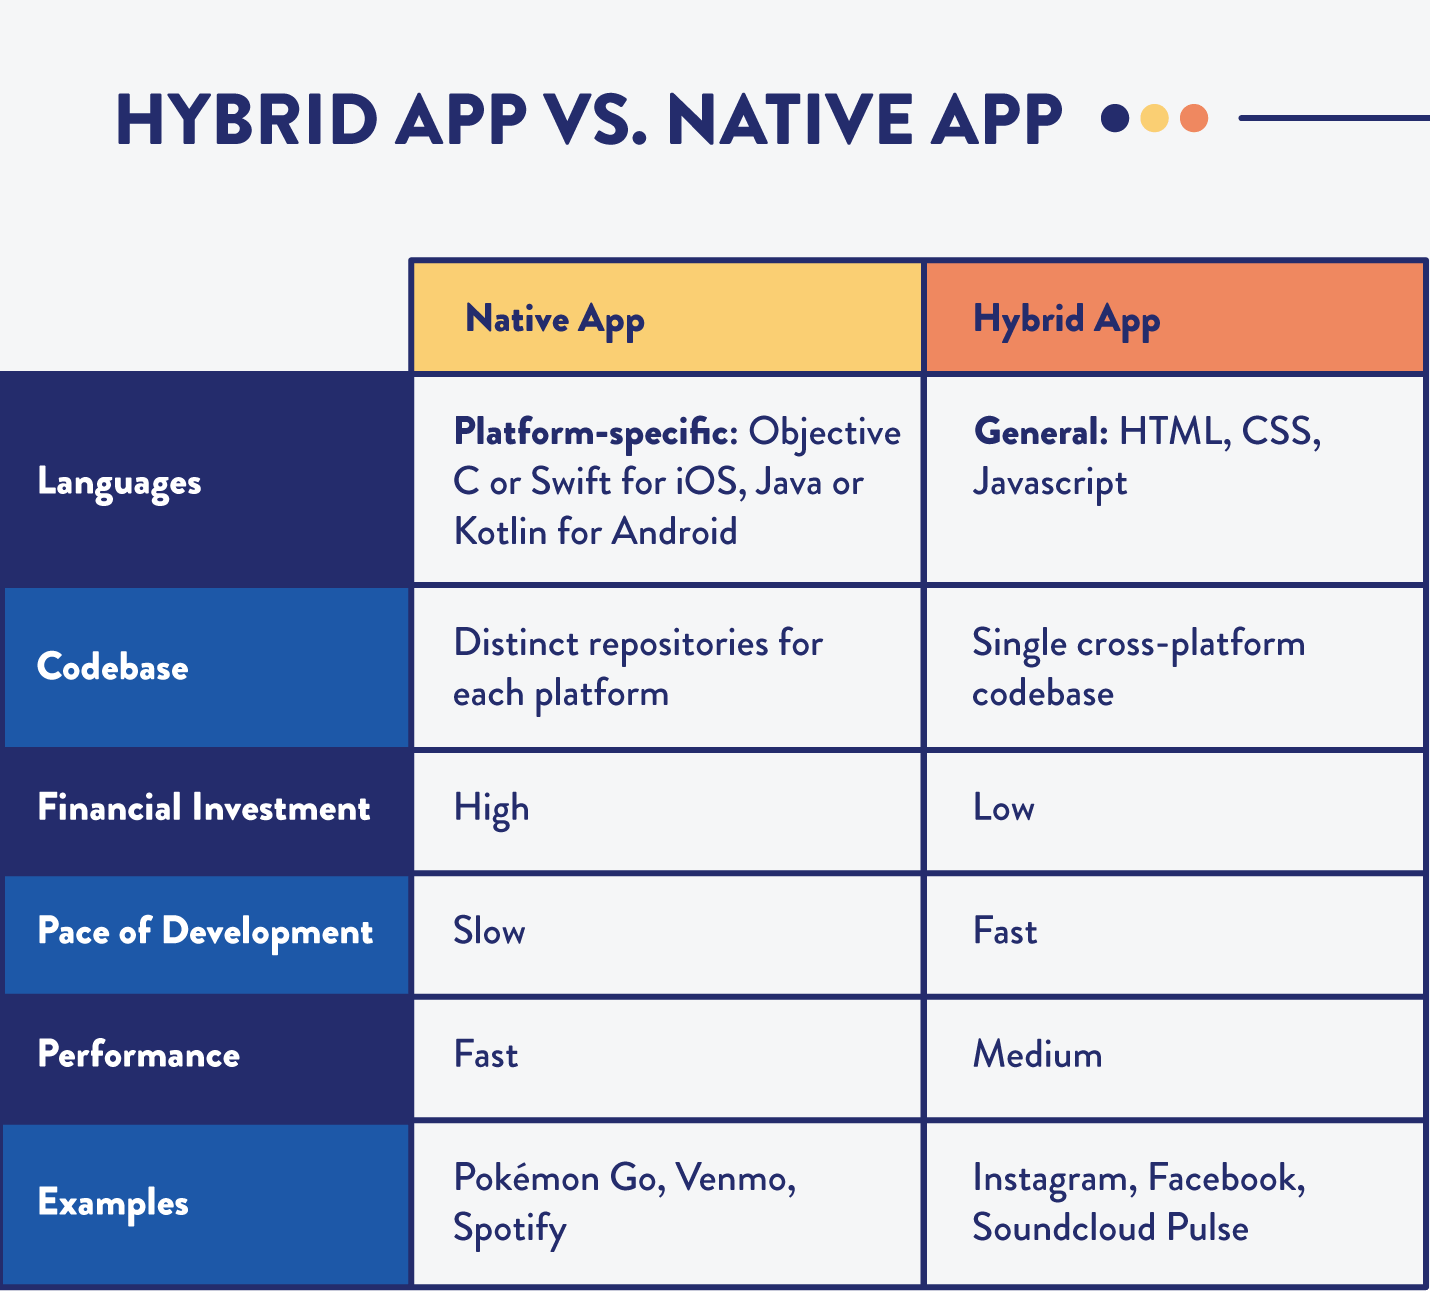 table comparing hybrid apps to native applications across categories such as performance, cost, time, and more.